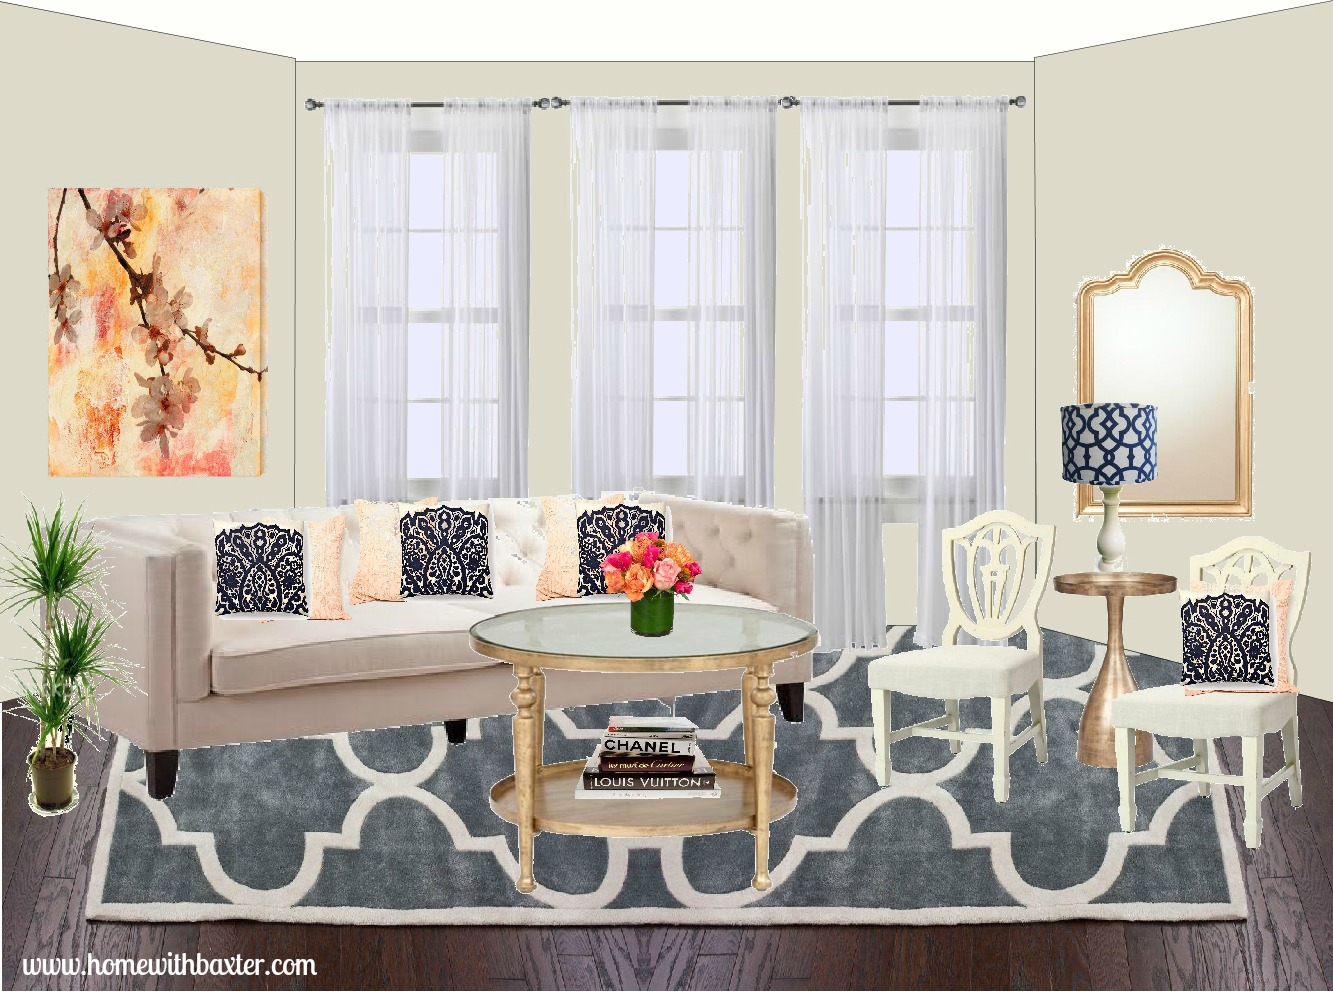 home with baxter design board glam living room we all know that gold hues are making a major comeback right now and i have to say i m really drawn to the trend it has me looking around at all my